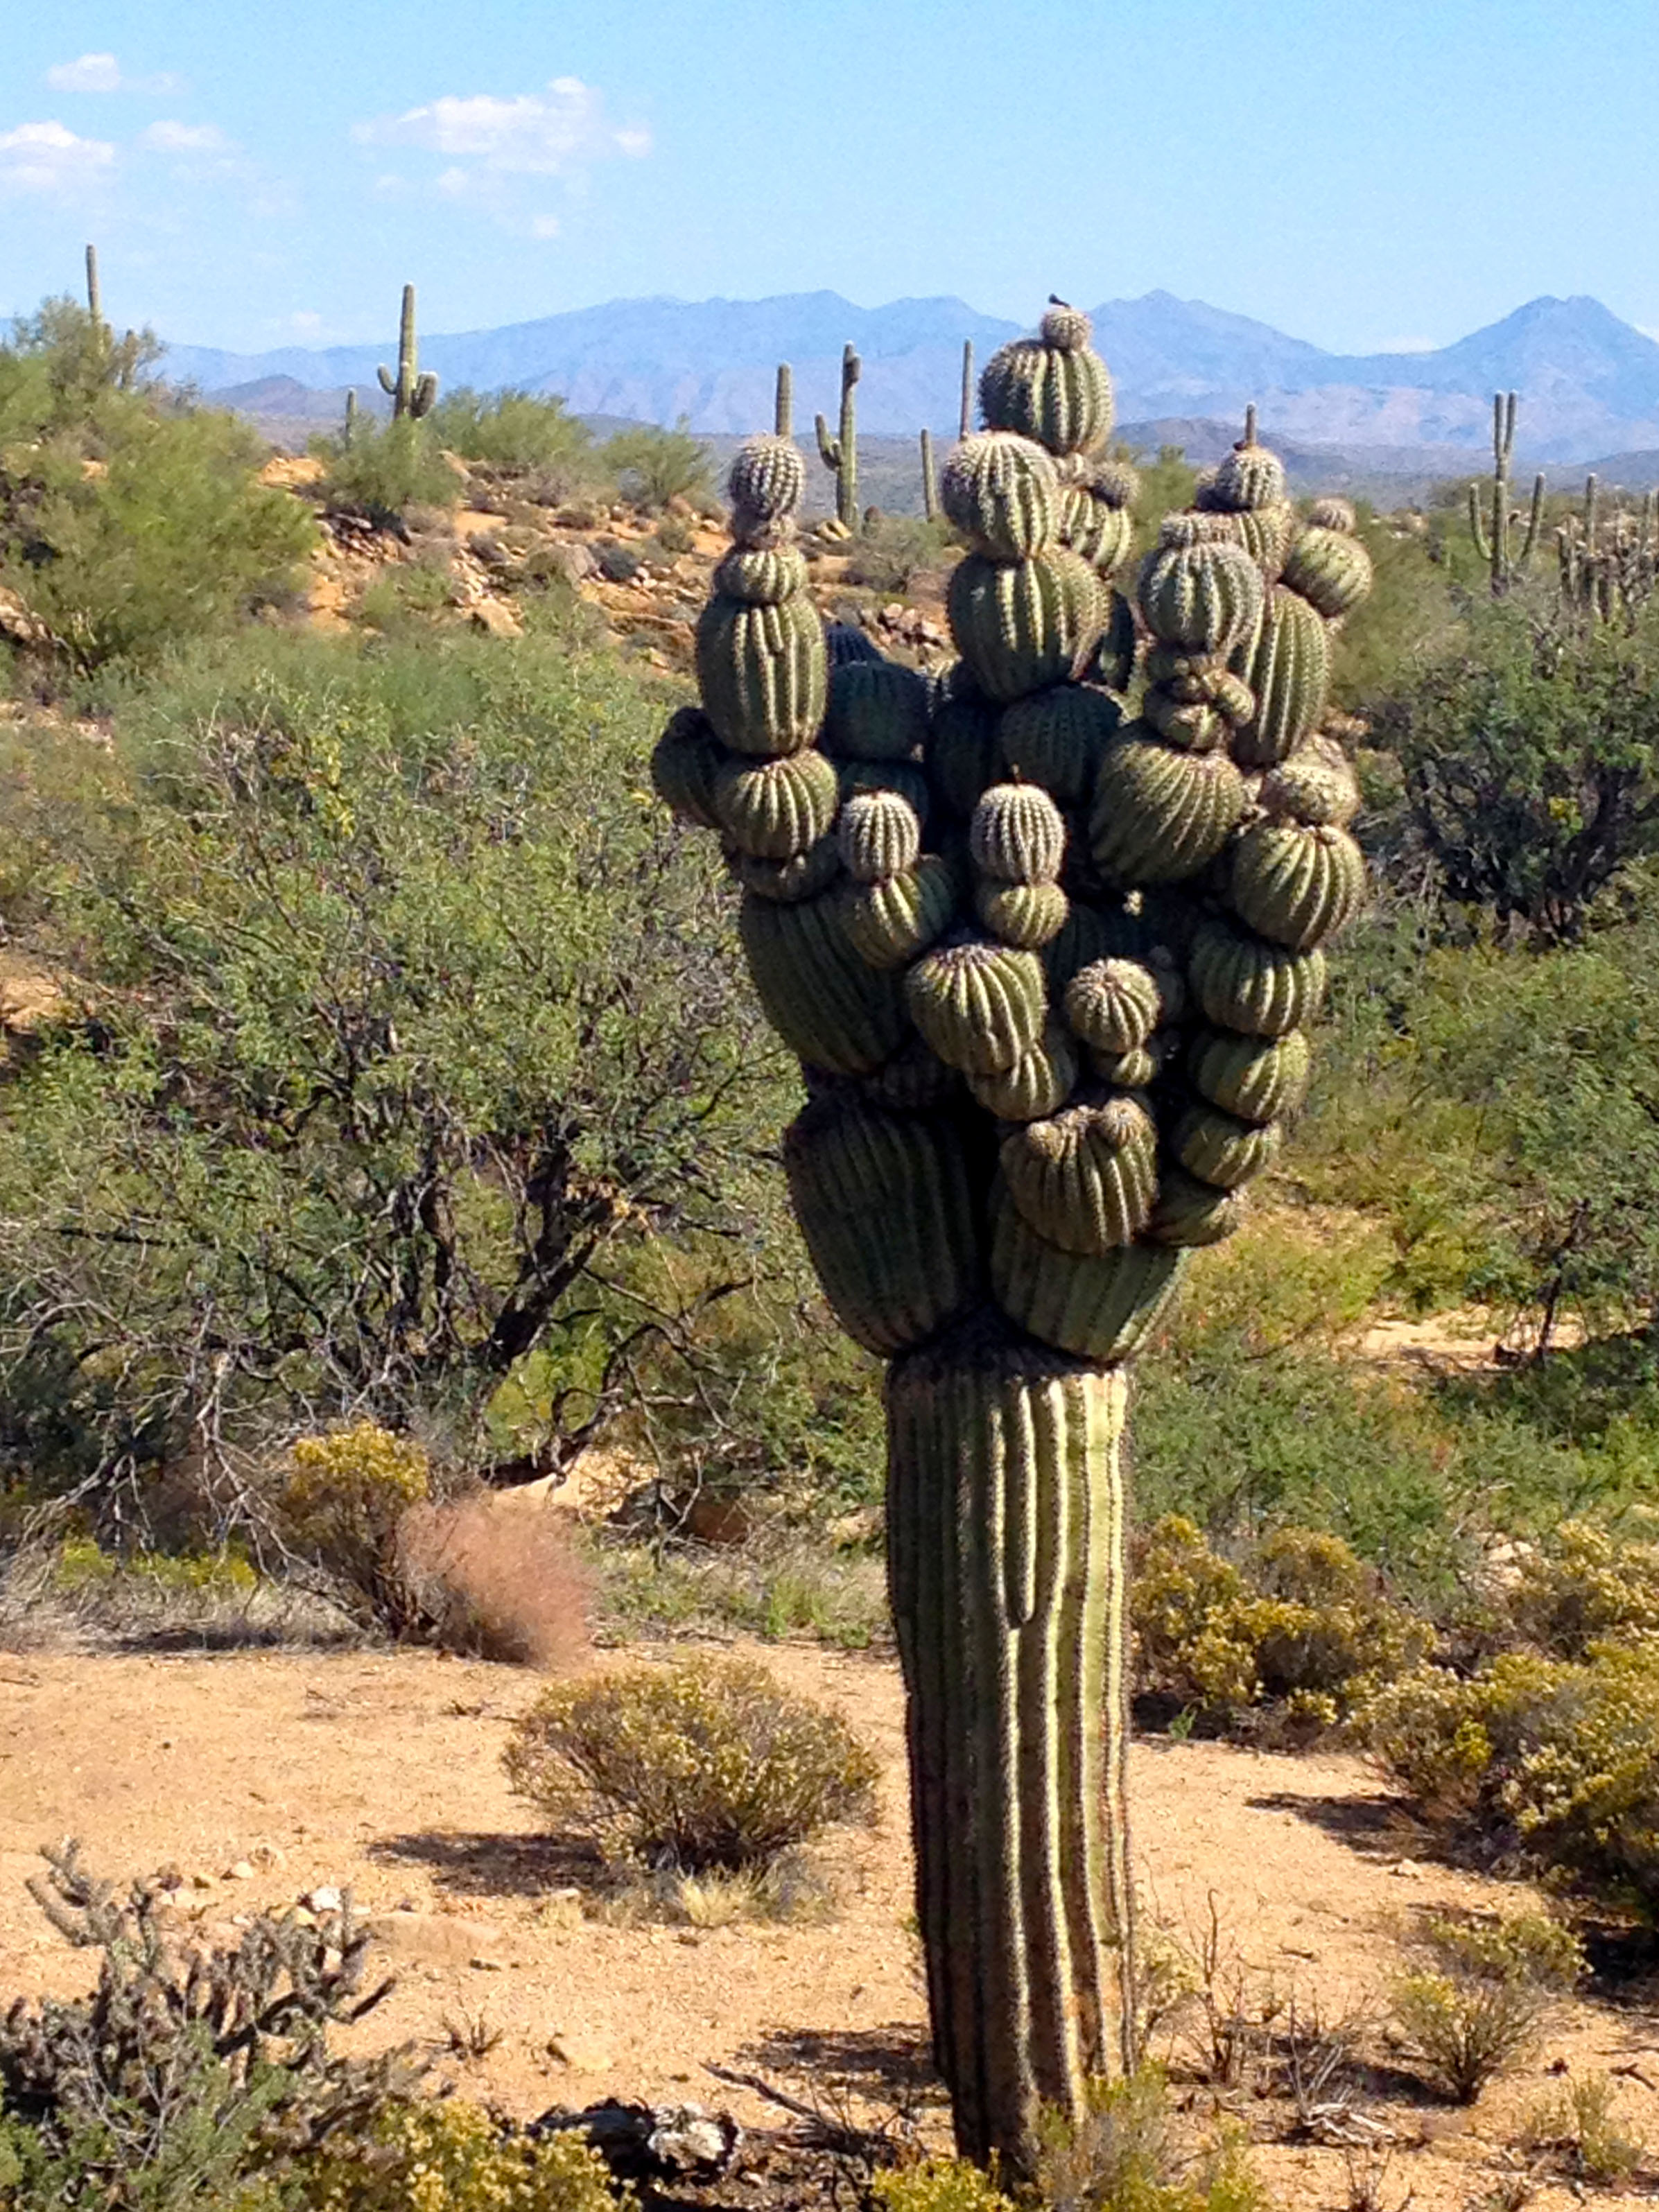 Michelin Man saguaro cactus